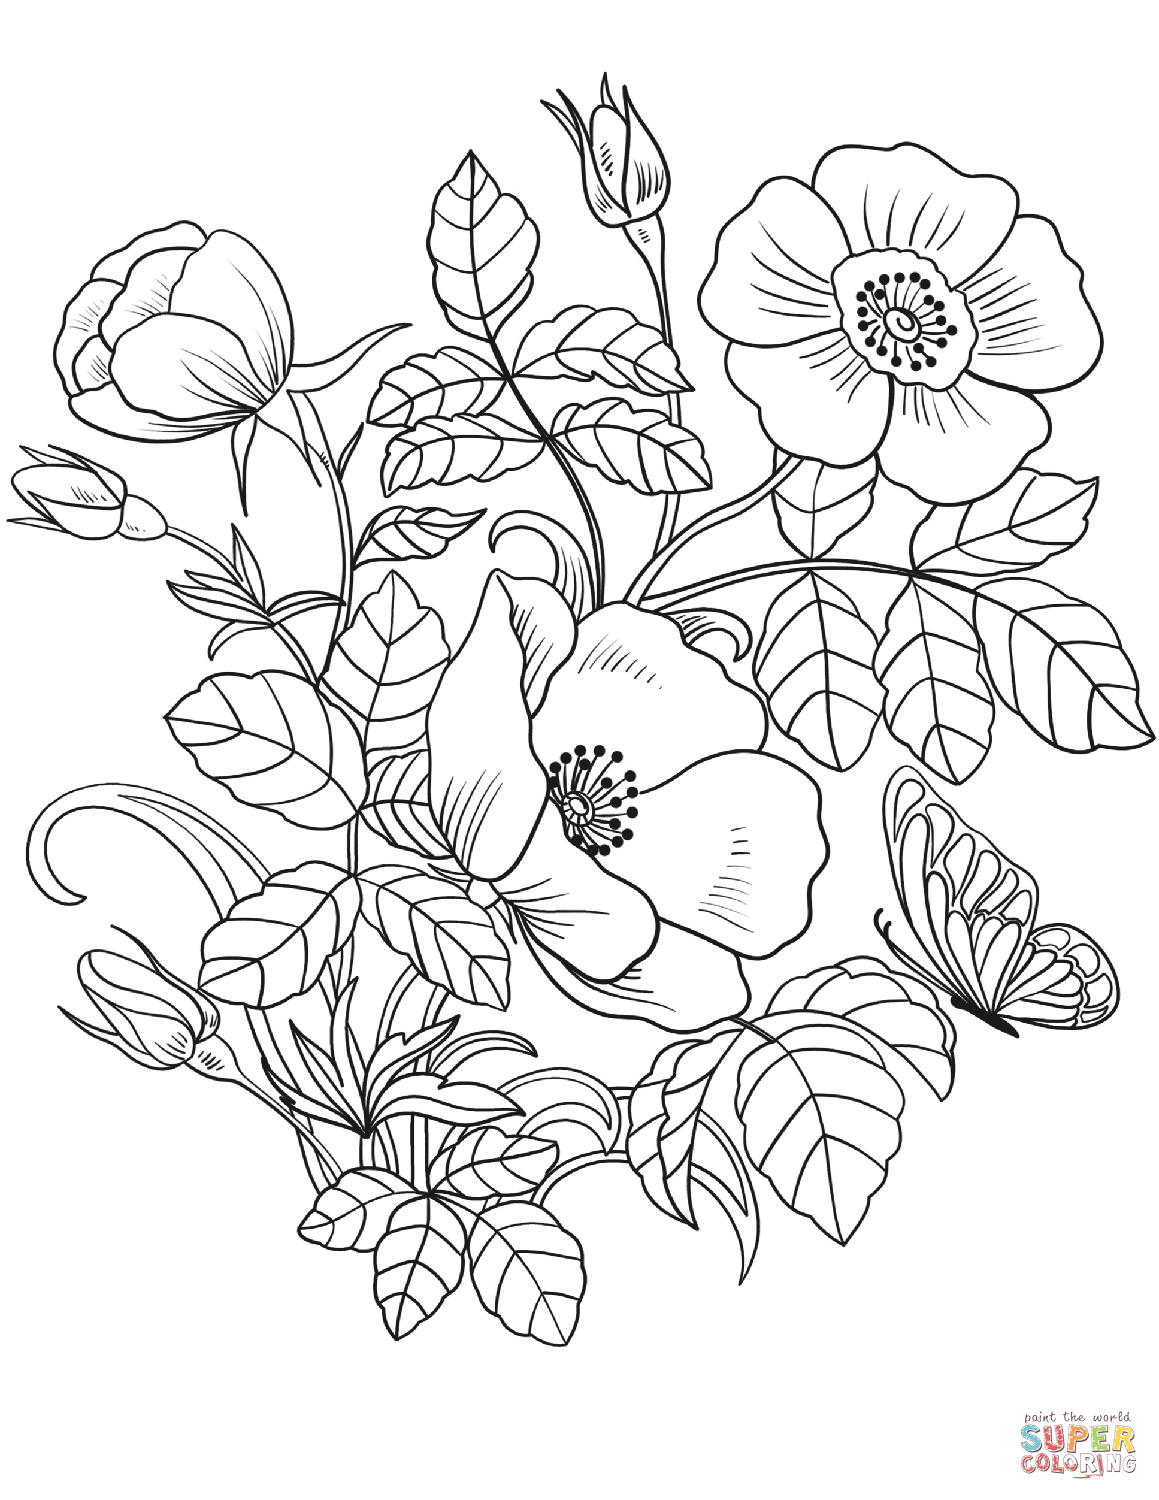 spring nature coloring pages coloring pages for kids spring in 2020 with images nature pages spring coloring